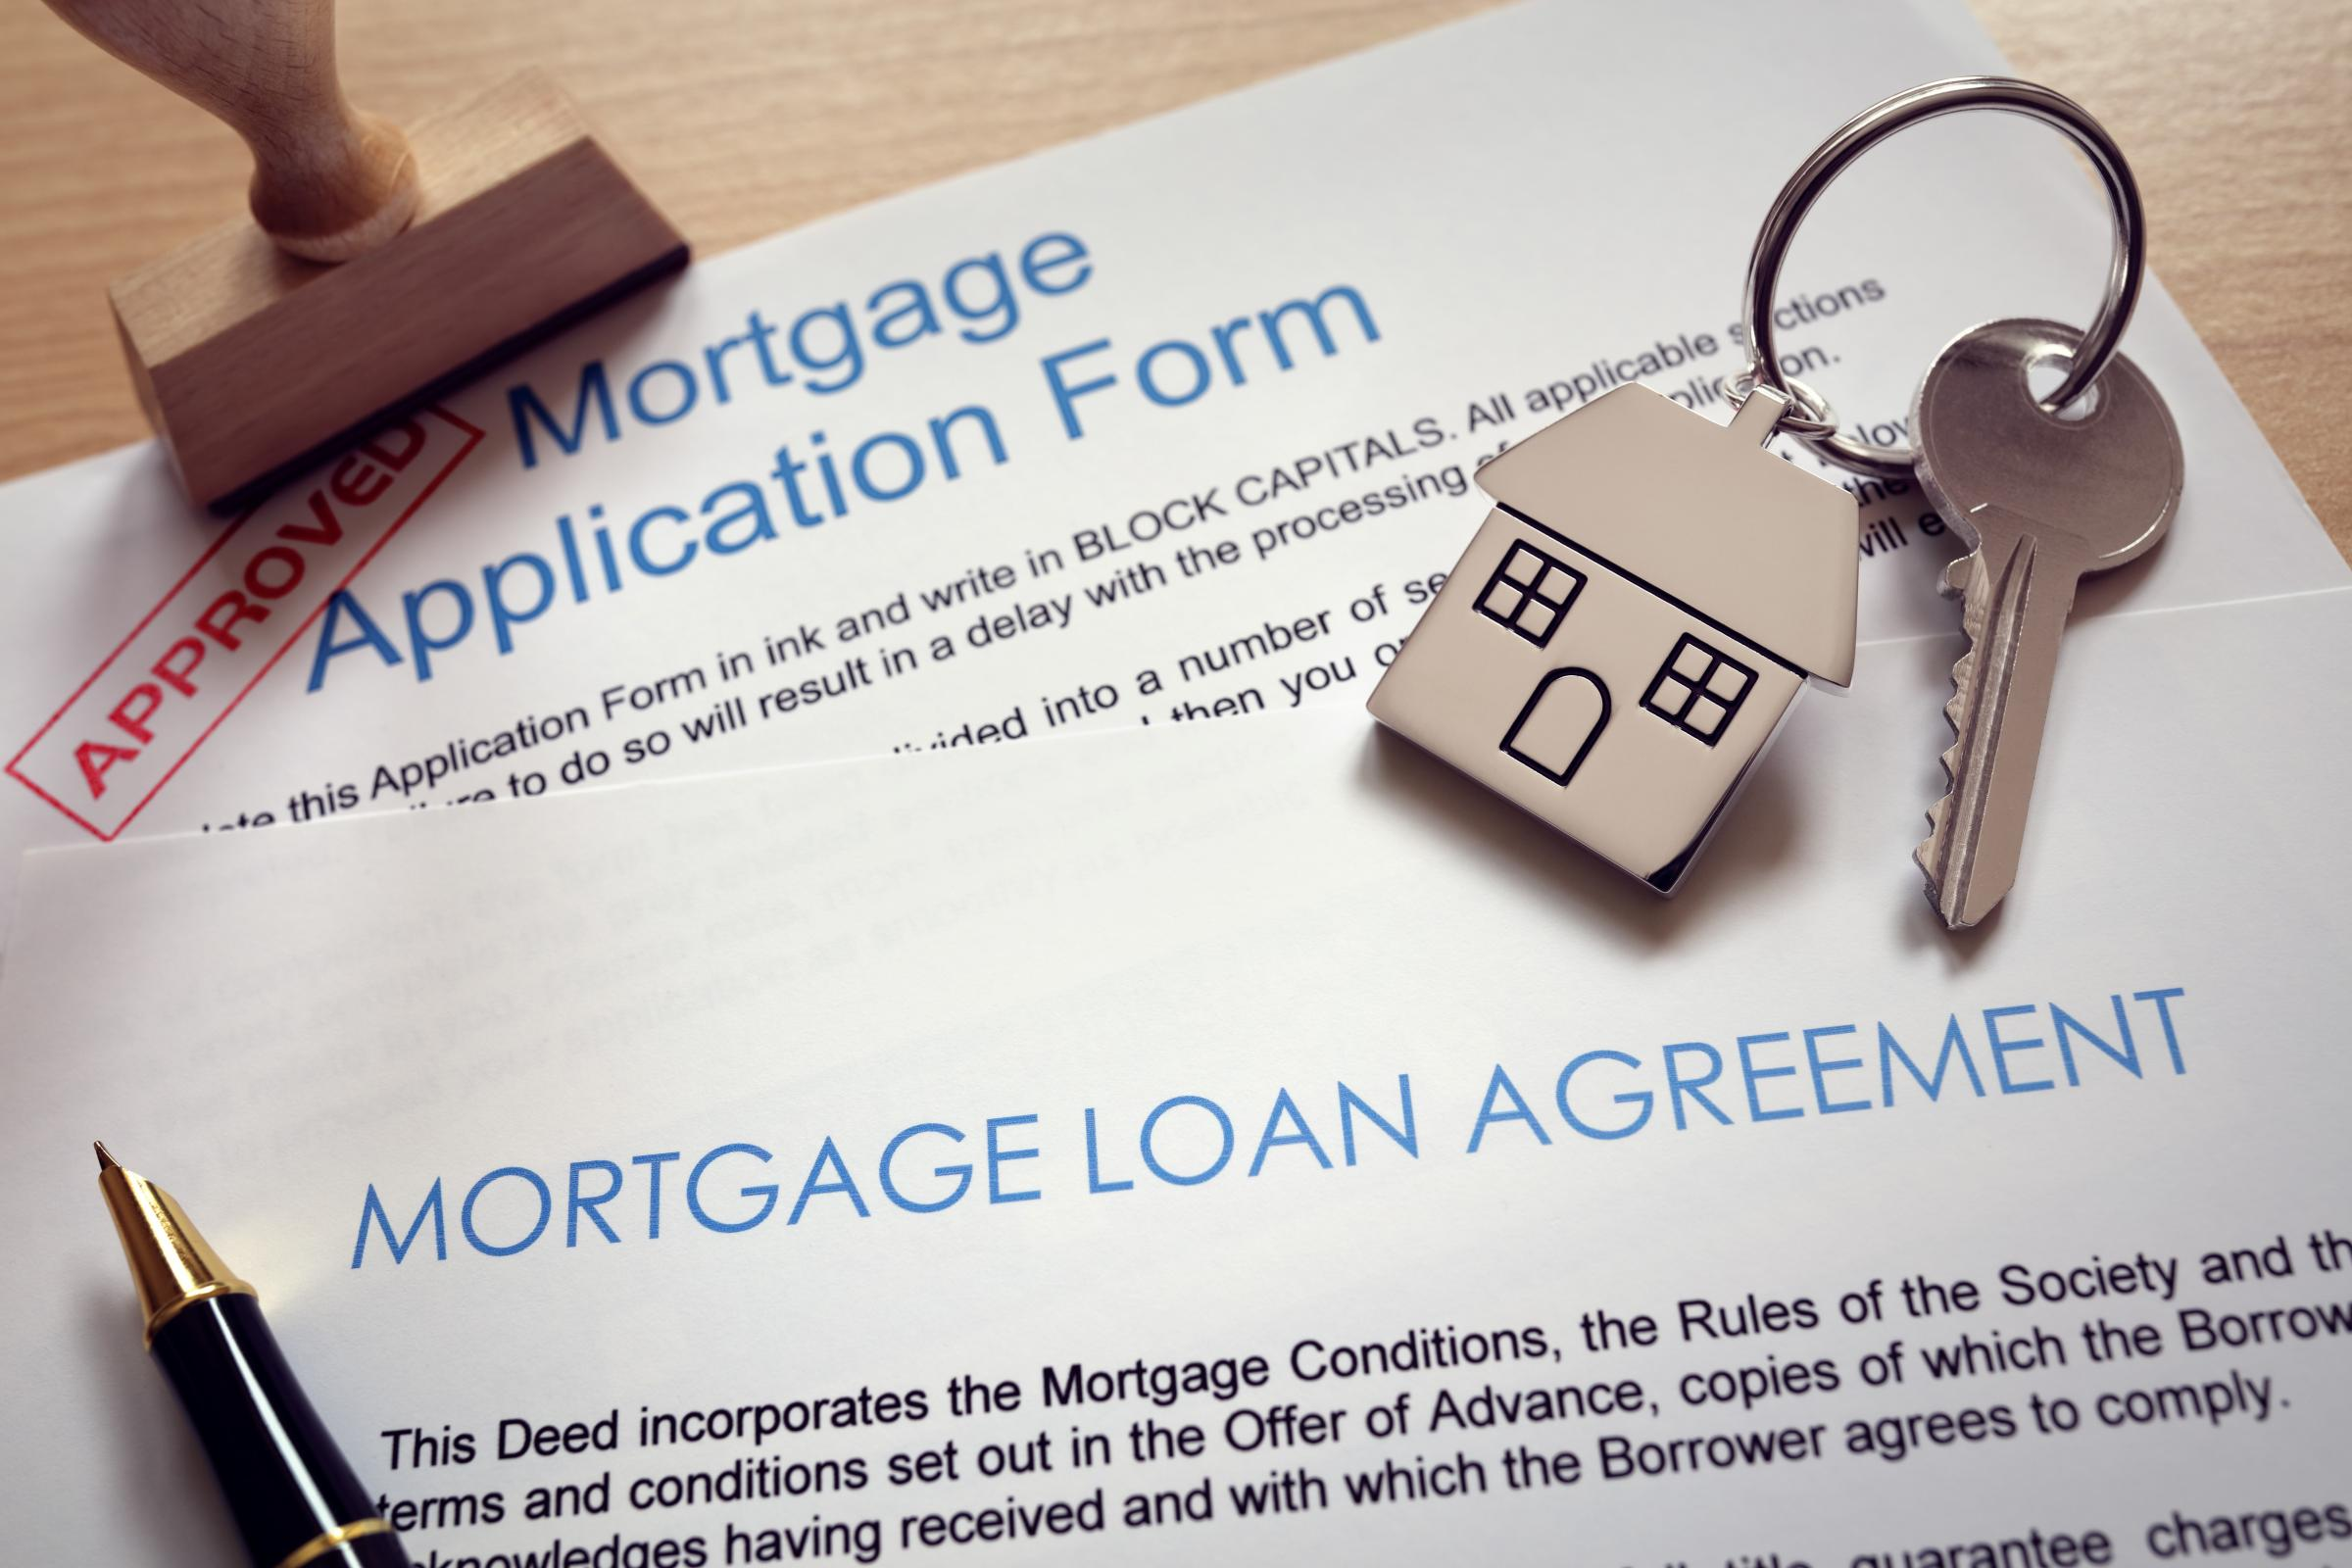 Property News: 30 year mortgages on the rise